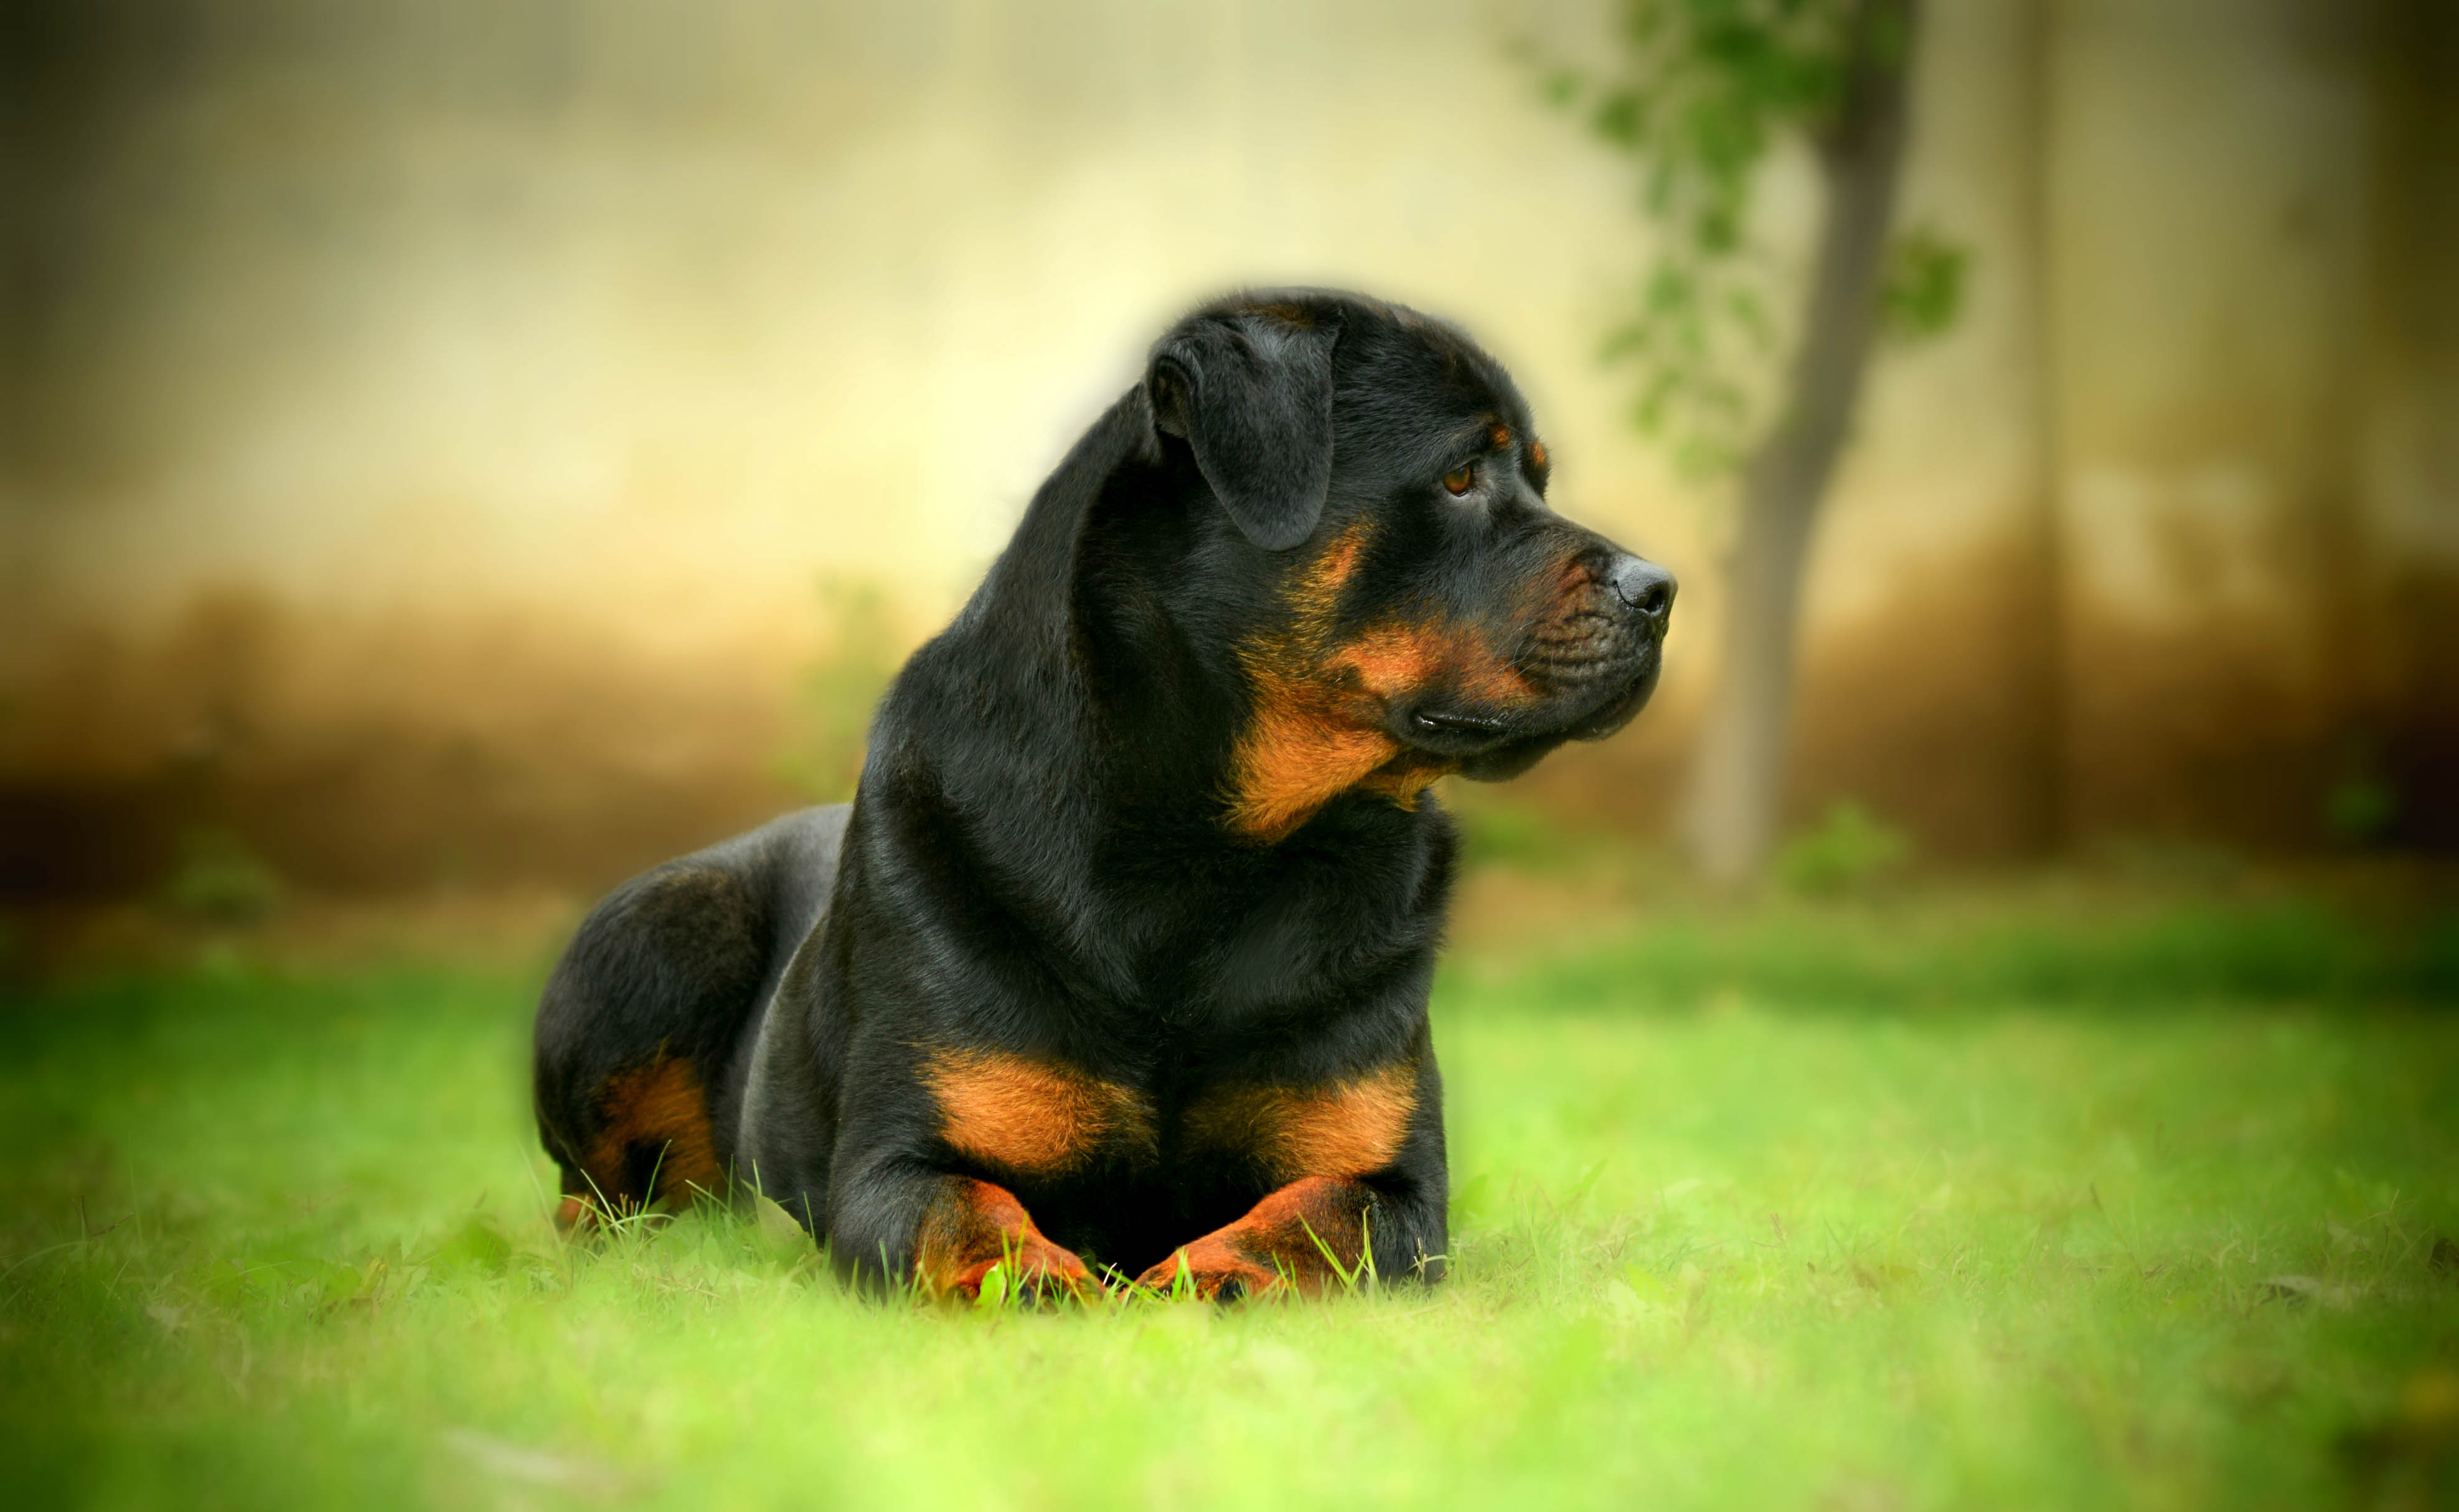 Rottweiler Awesome Hd Wallpapers Backgrounds In High HD Wallpapers Download Free Images Wallpaper [1000image.com]